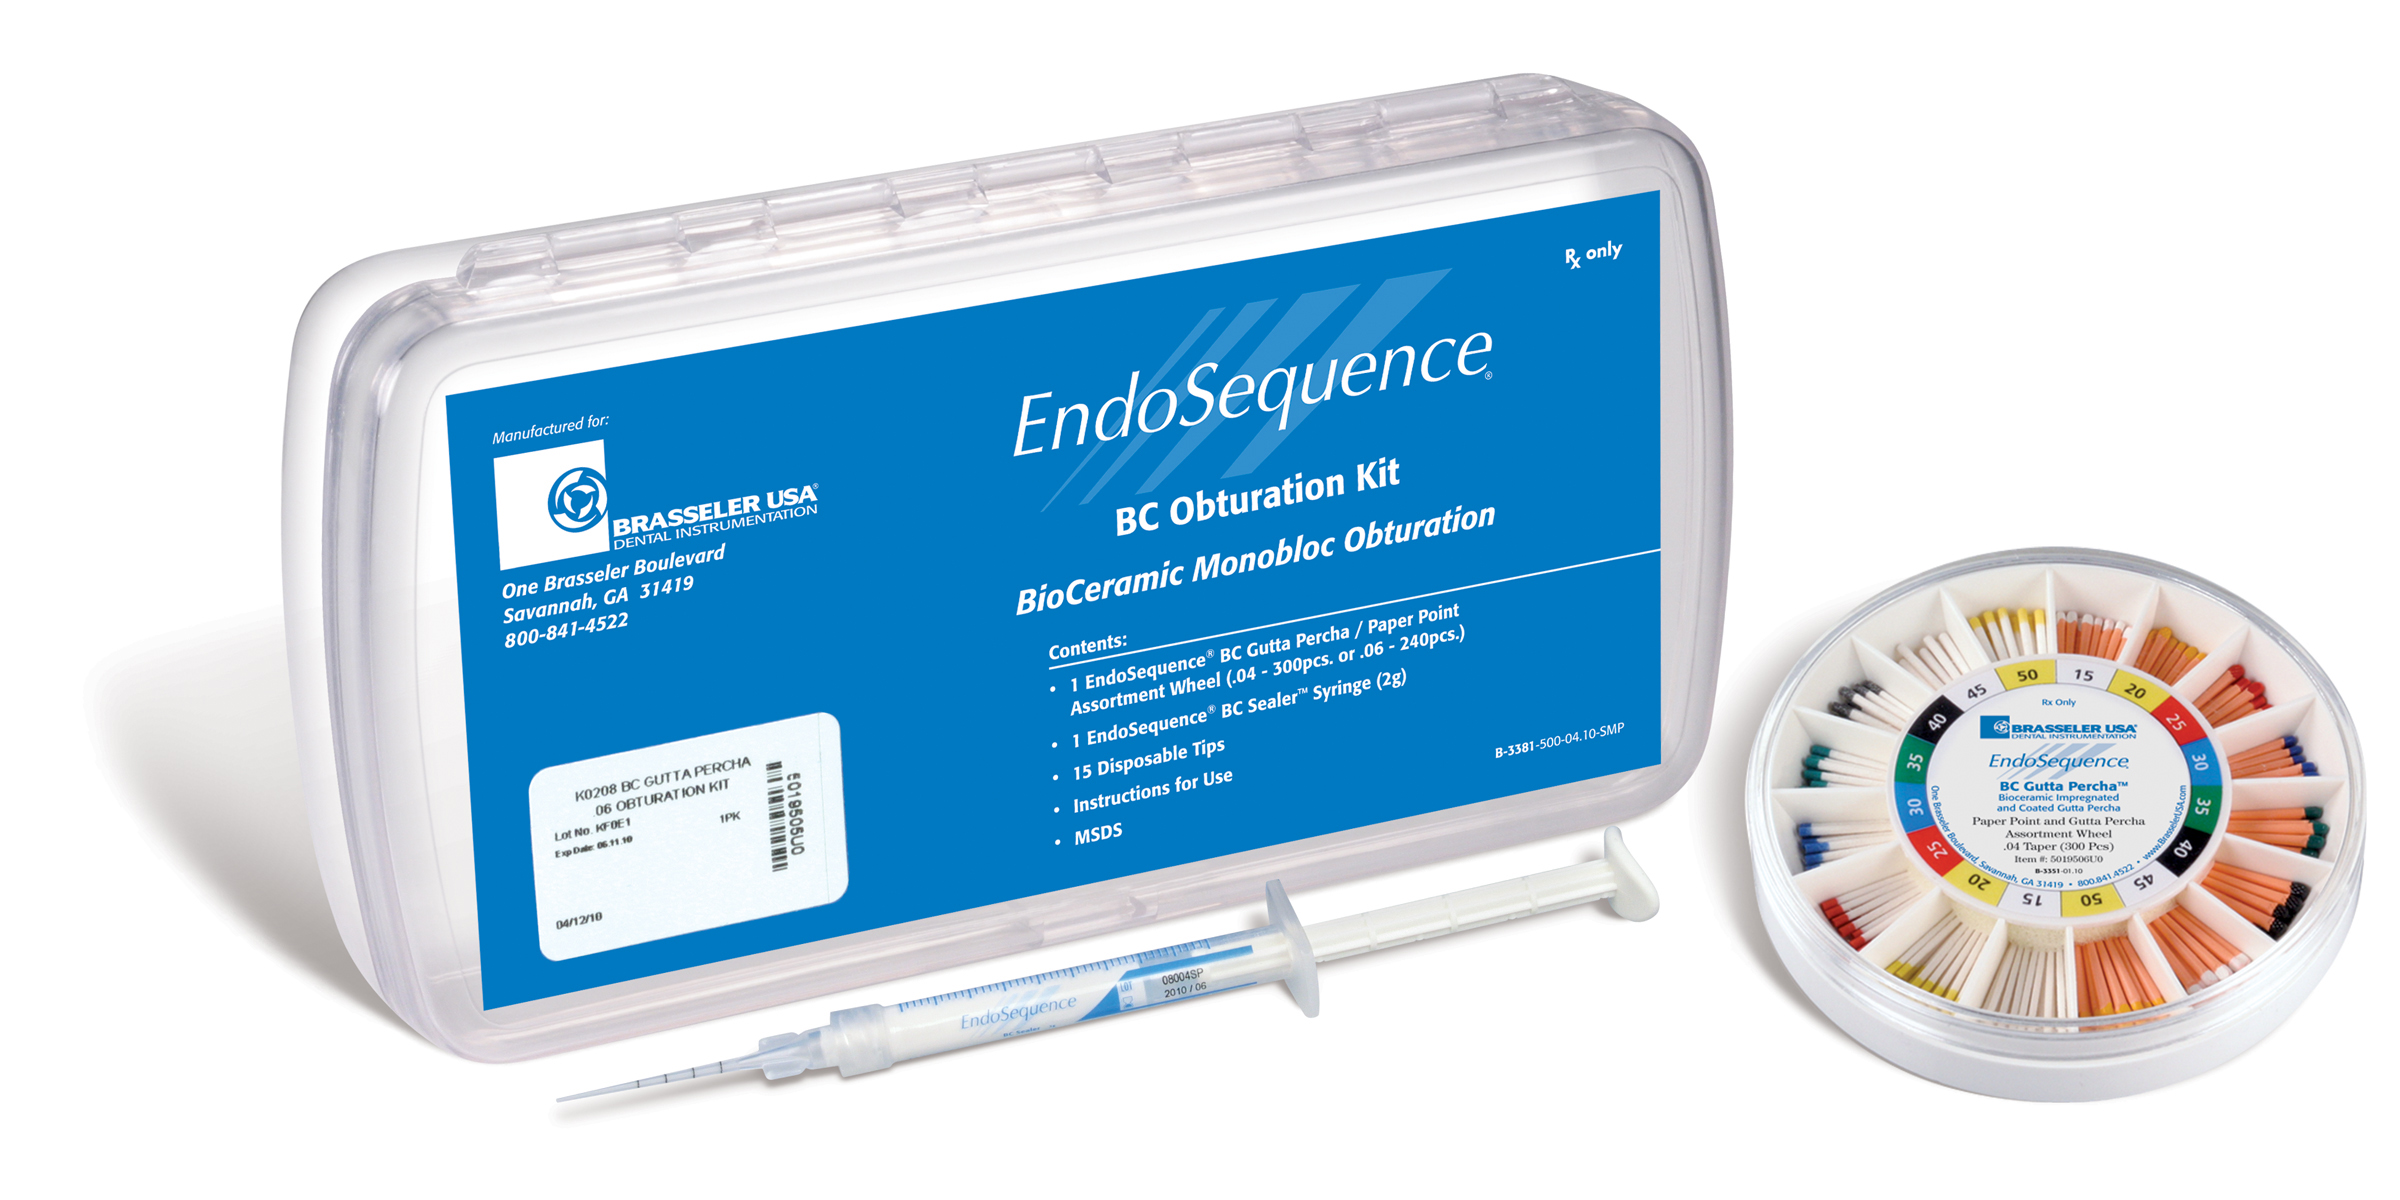 EndoSequence BC Obturation Kit